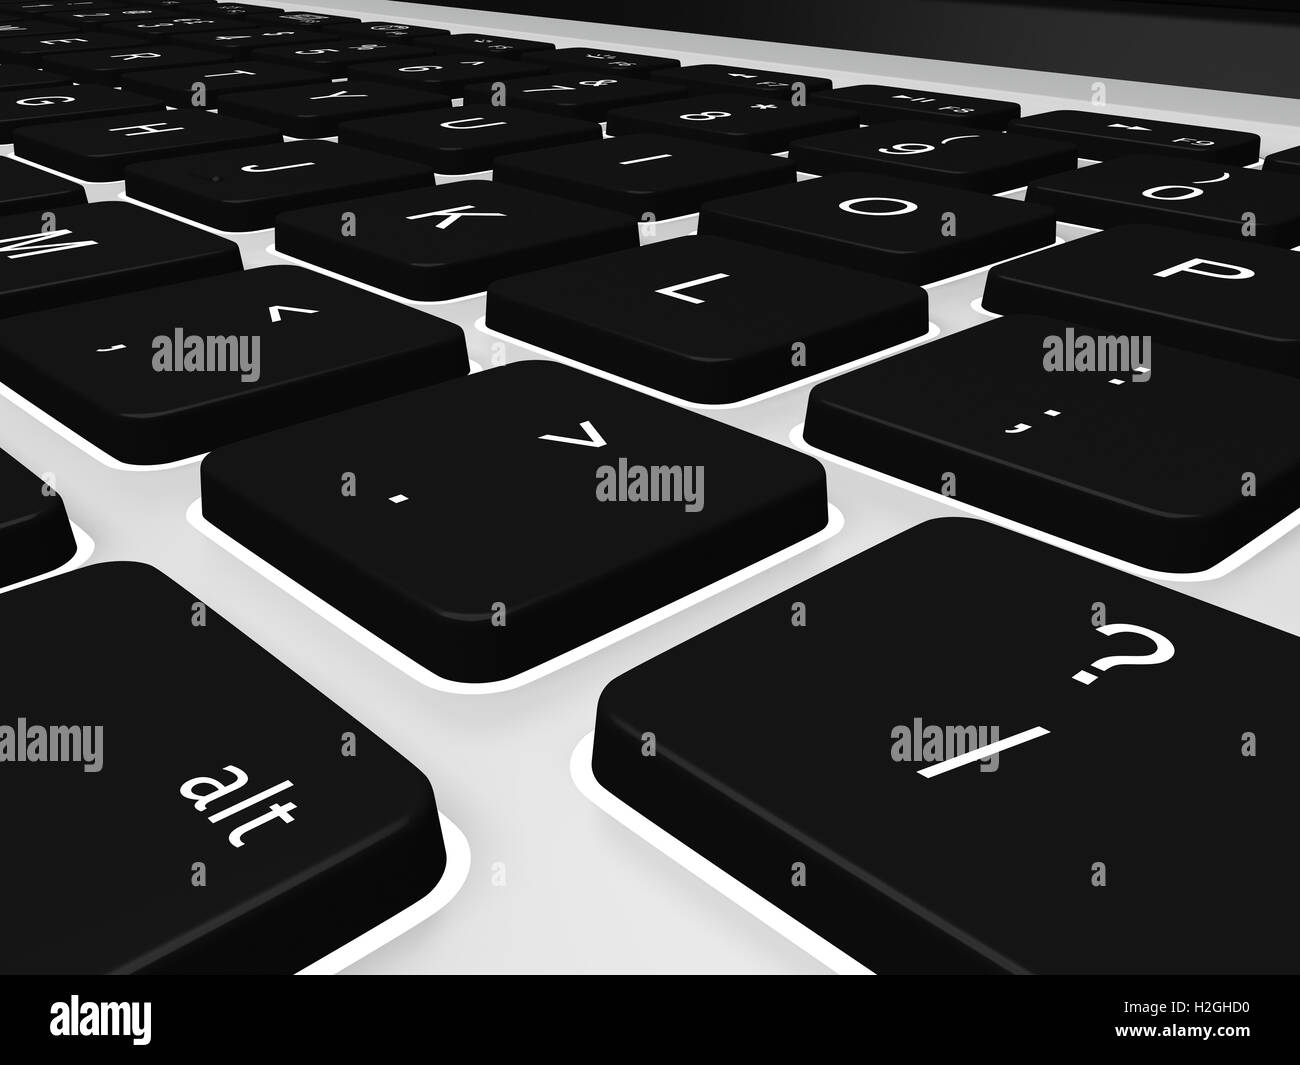 Keyboard detail - Stock Image